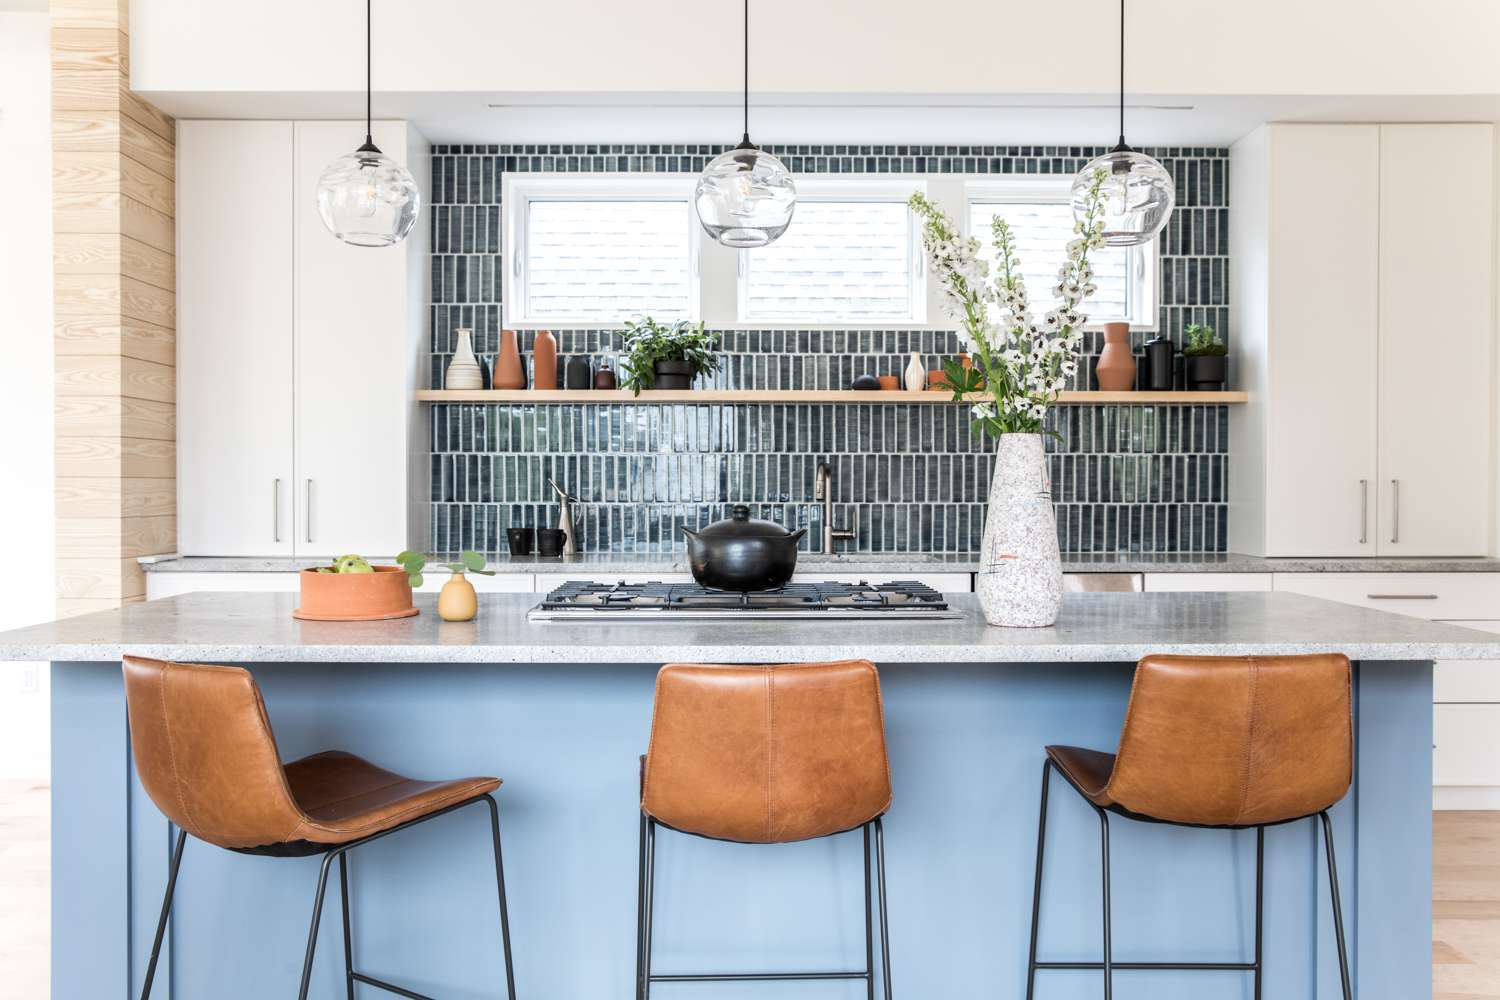 A kitchen with a black tiled backsplash and a light blue painted island